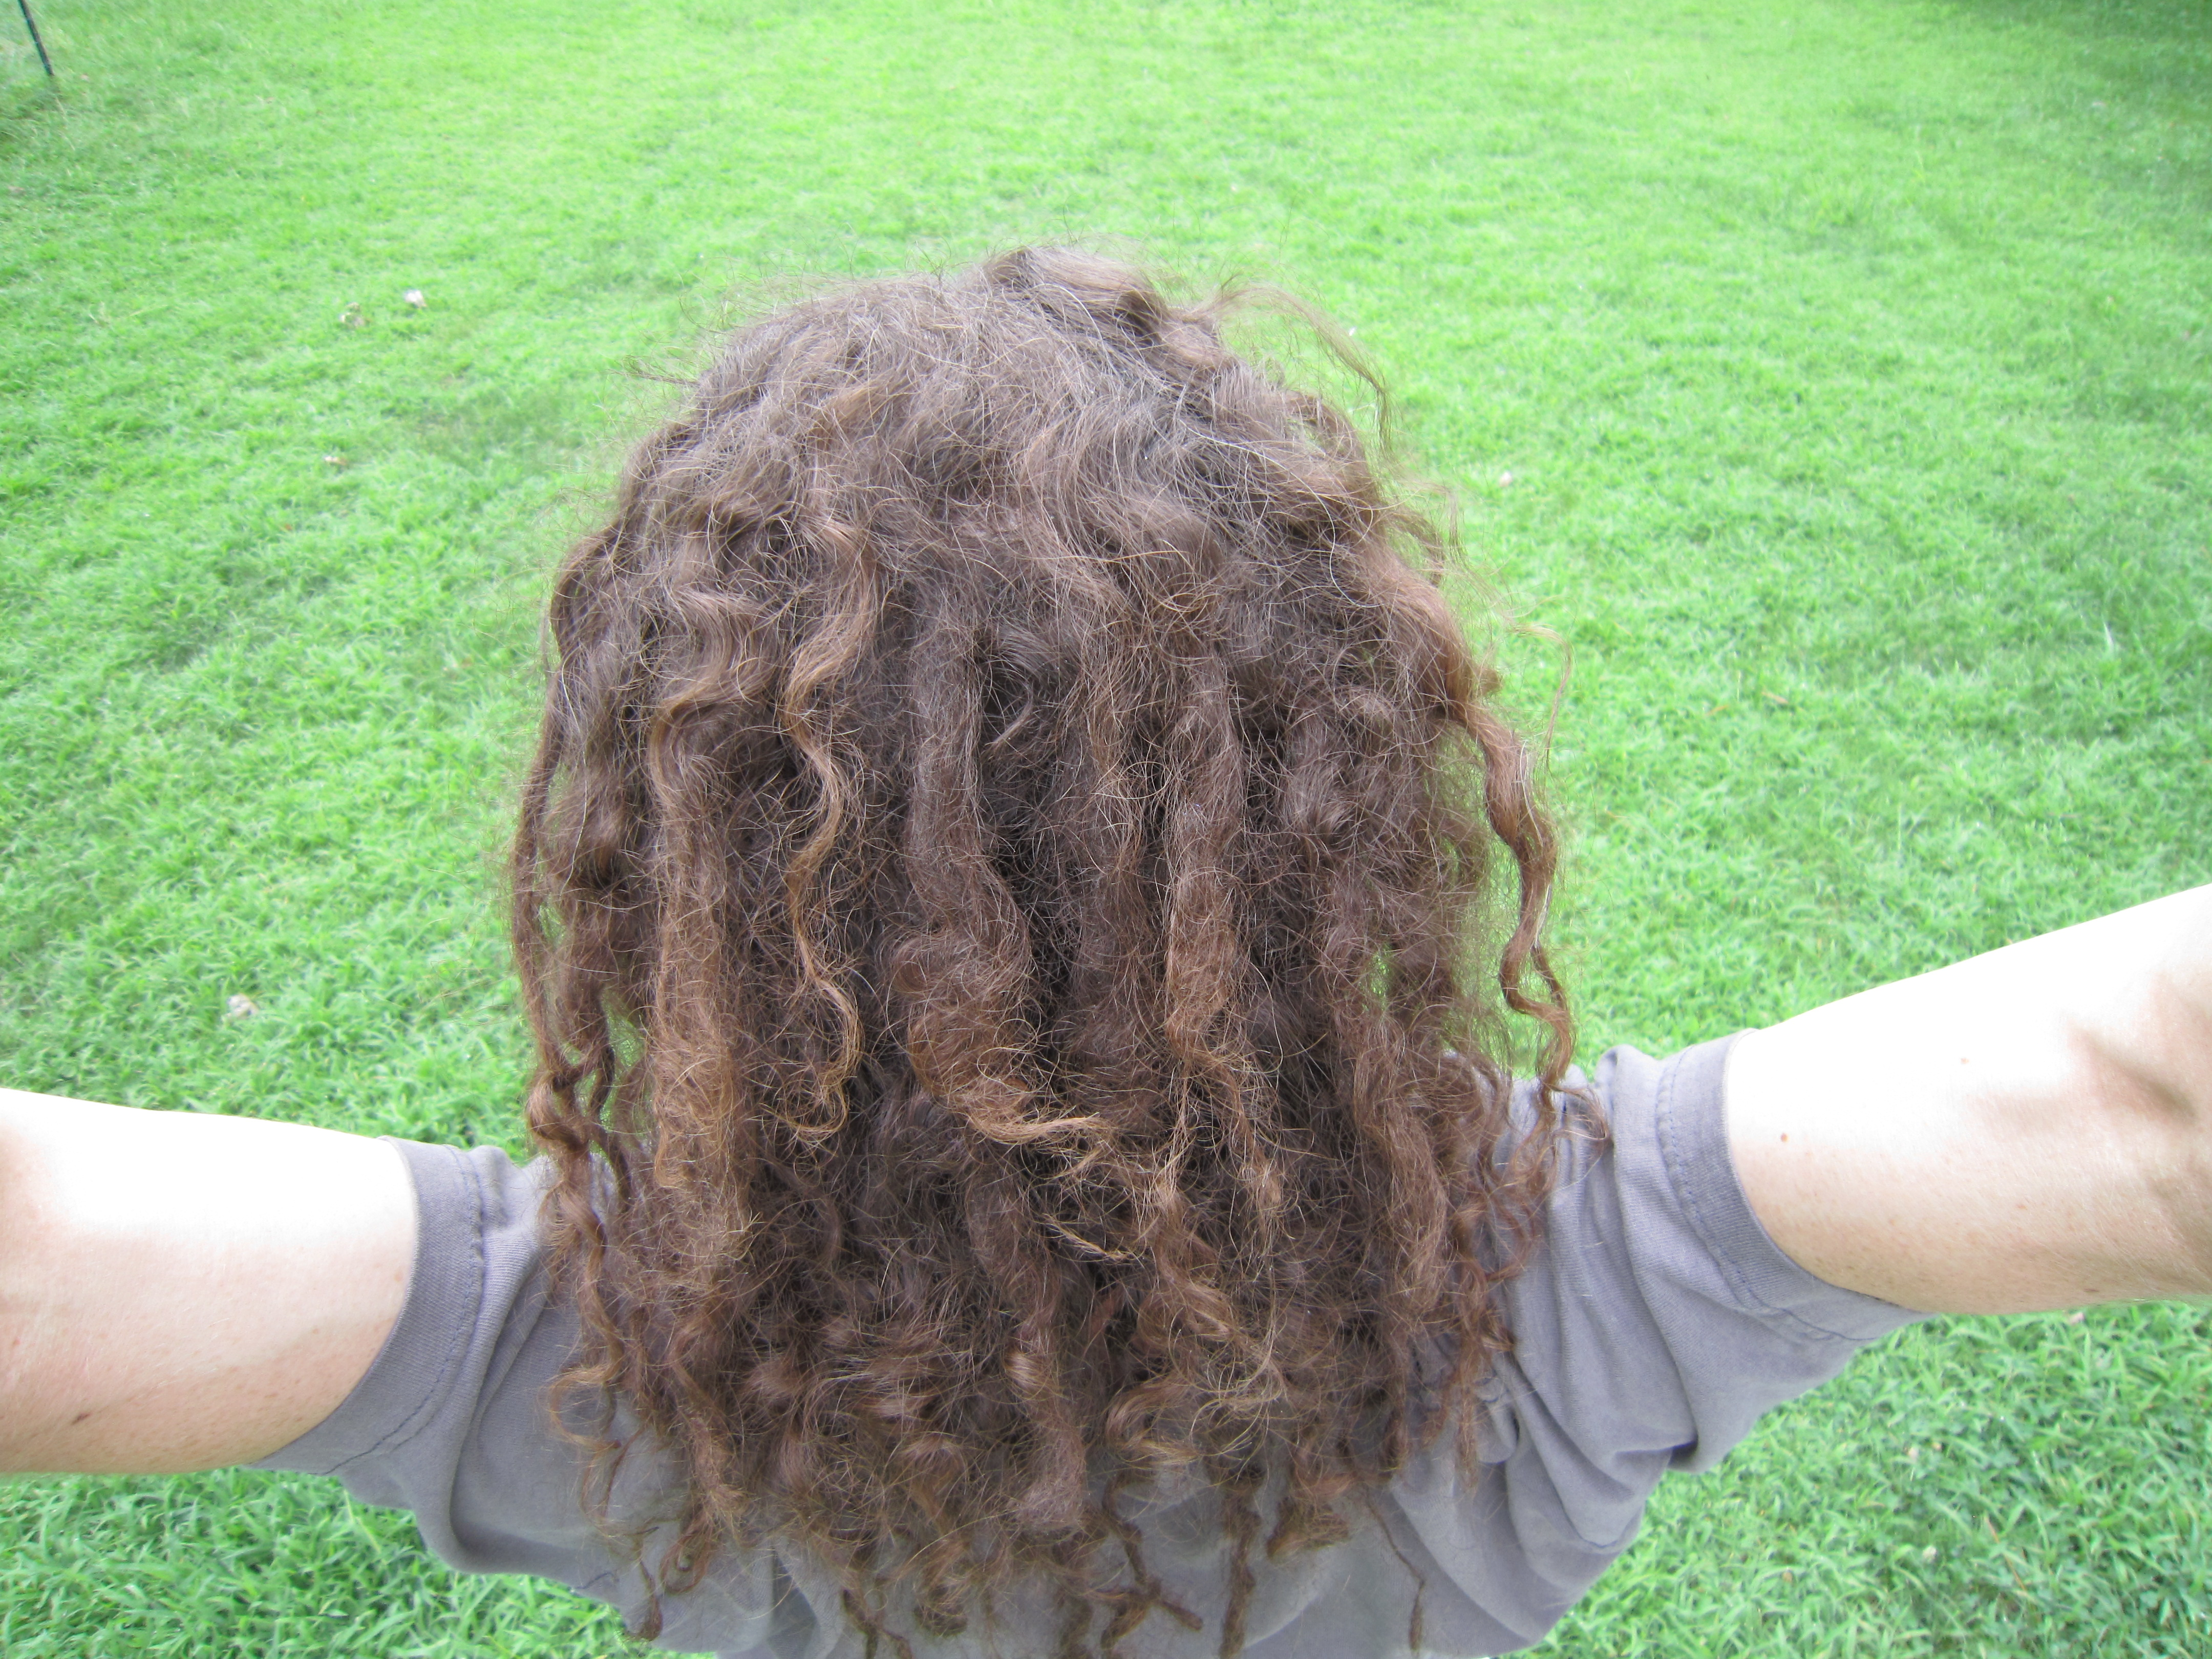 The Beauty Of The Early Messy Stage Of Natural Neglect Dreadlocks